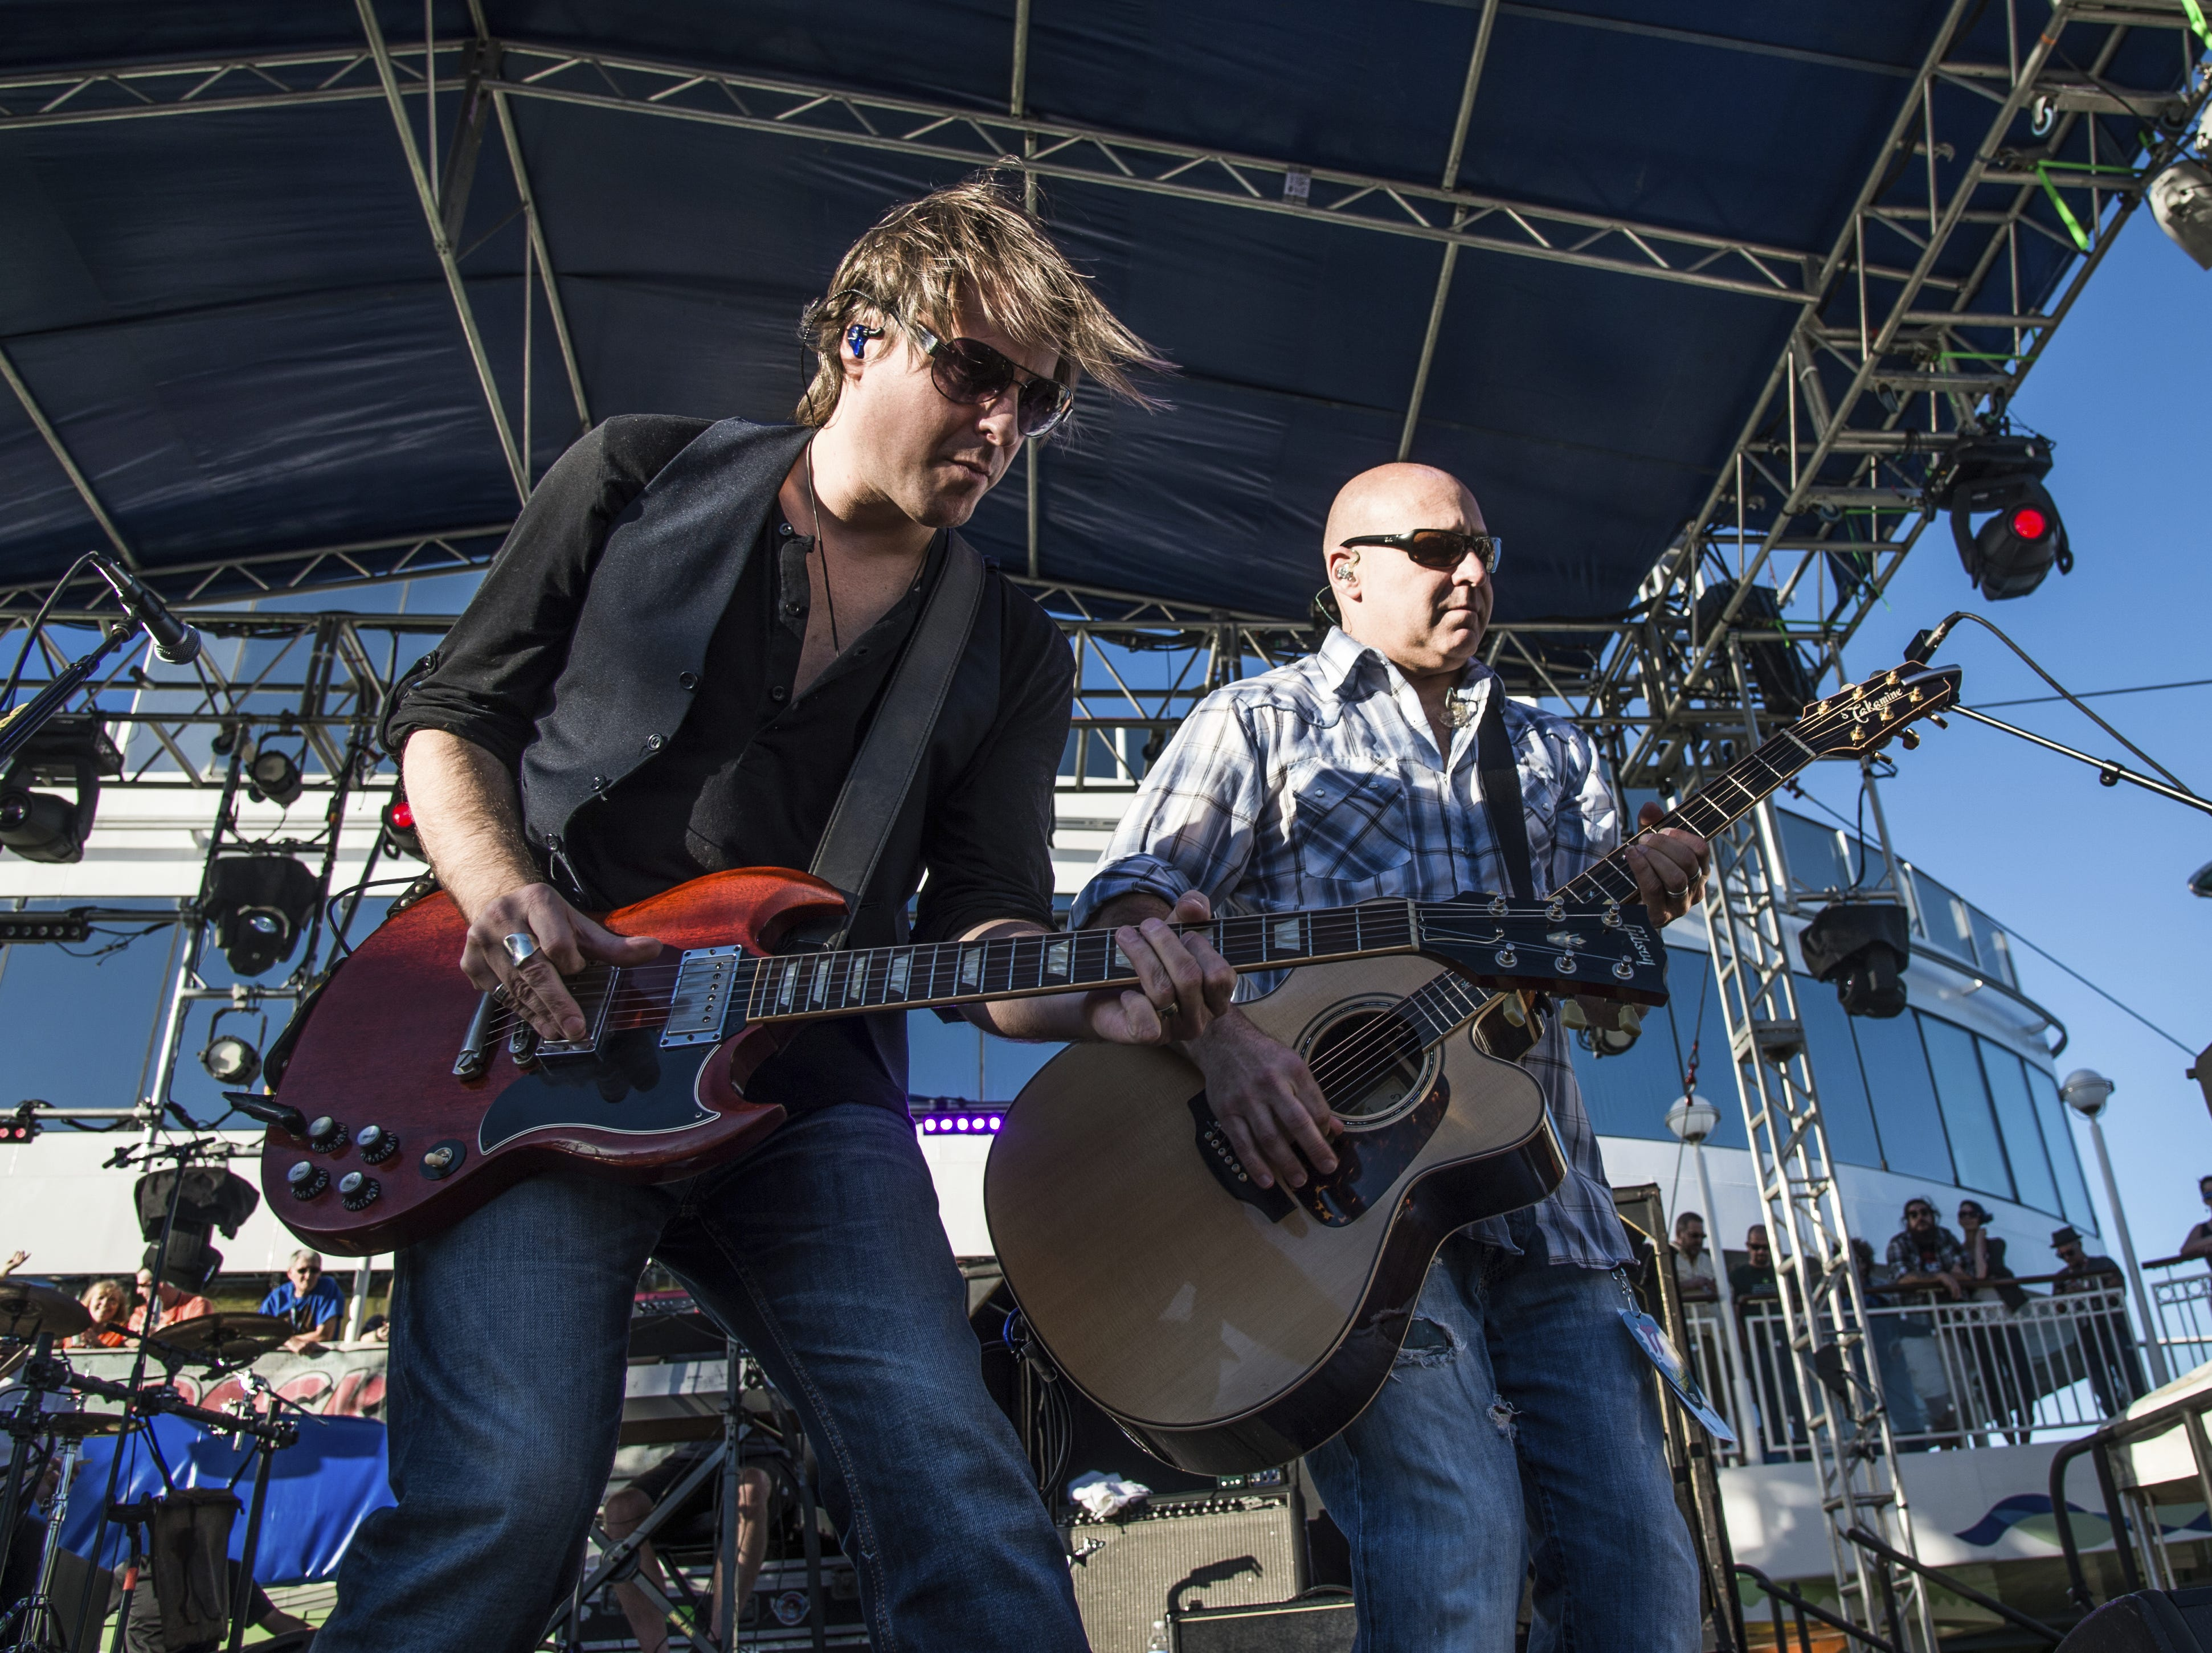 Sister Hazel is scheduled to play the Budweiser Forever Country Stage at CMA Fest 2019.